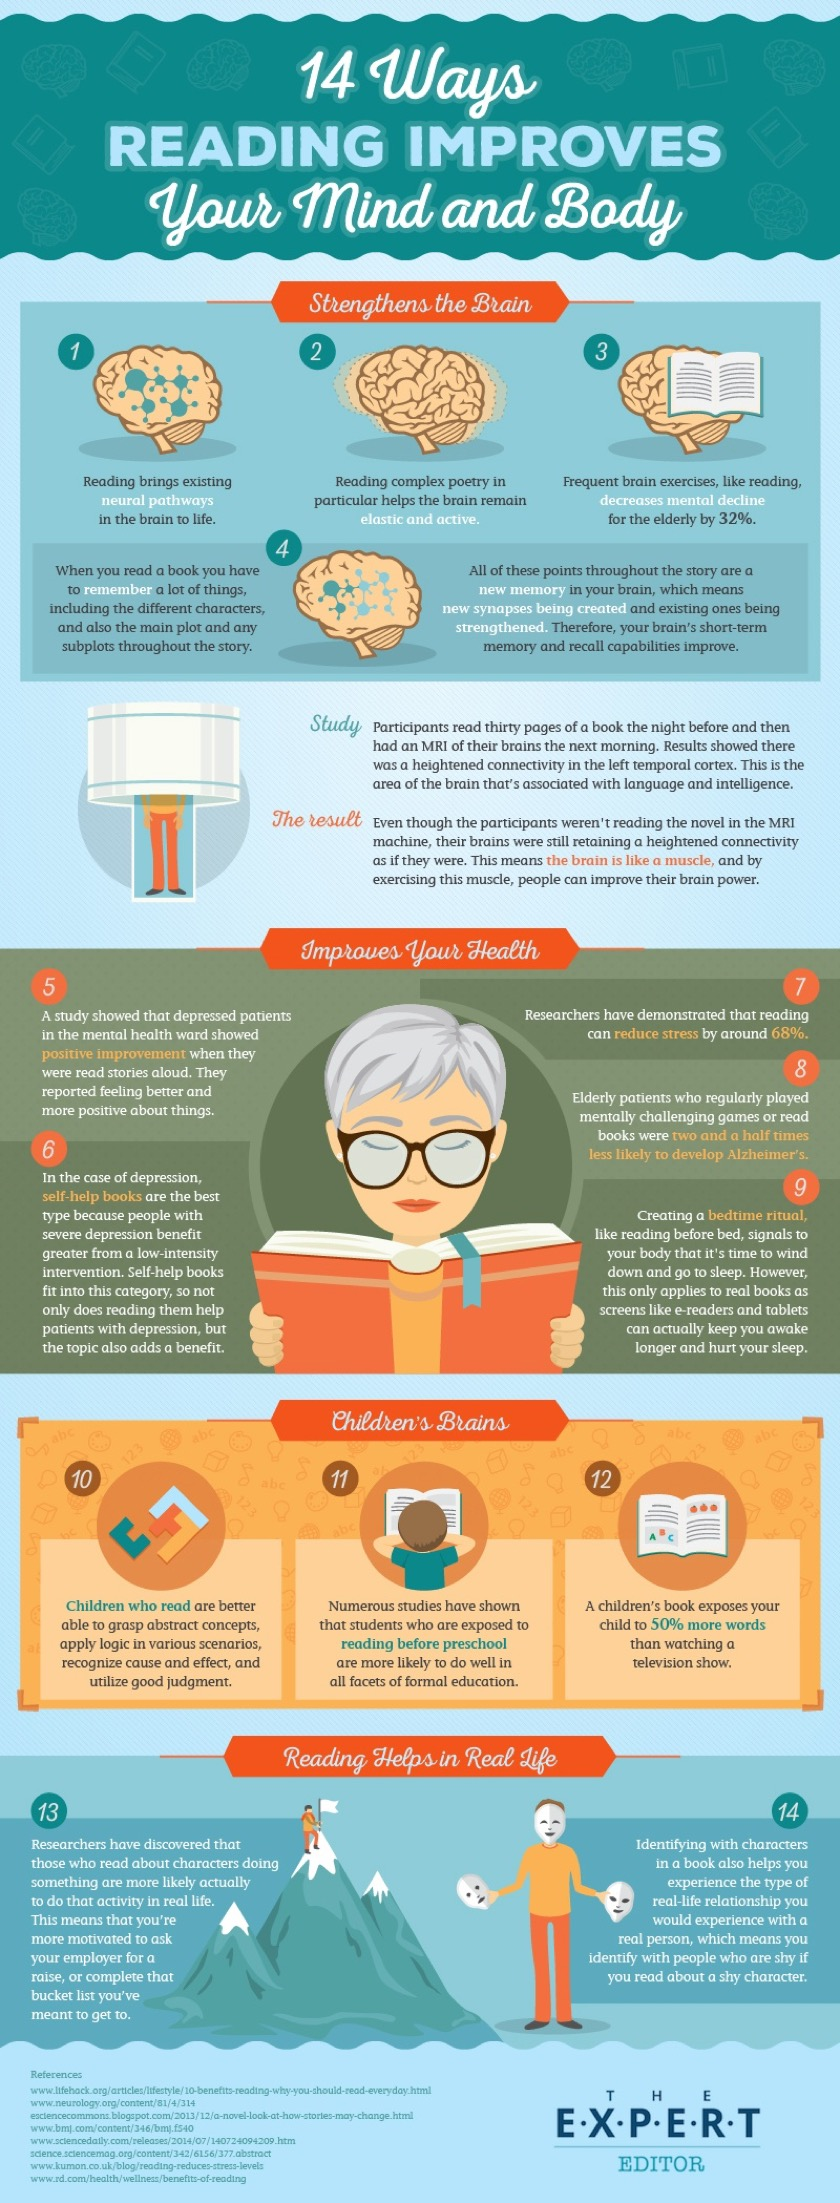 How reading improves your body and mind #infographic